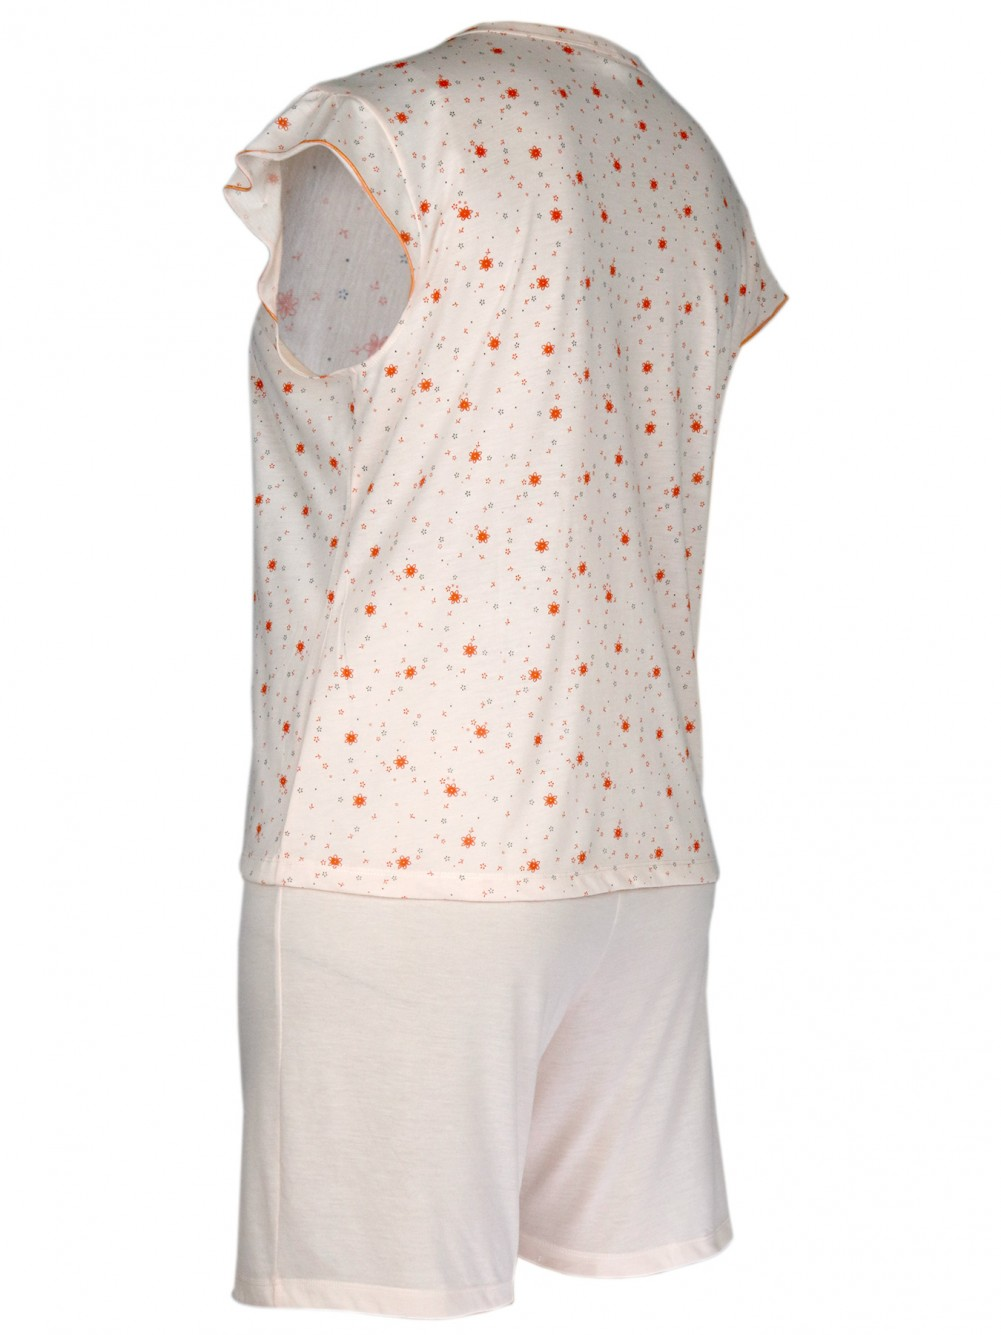 Damen Kurz-Pyjama, Shorty Set 100% Baumwolle - Orange/Seitenansicht